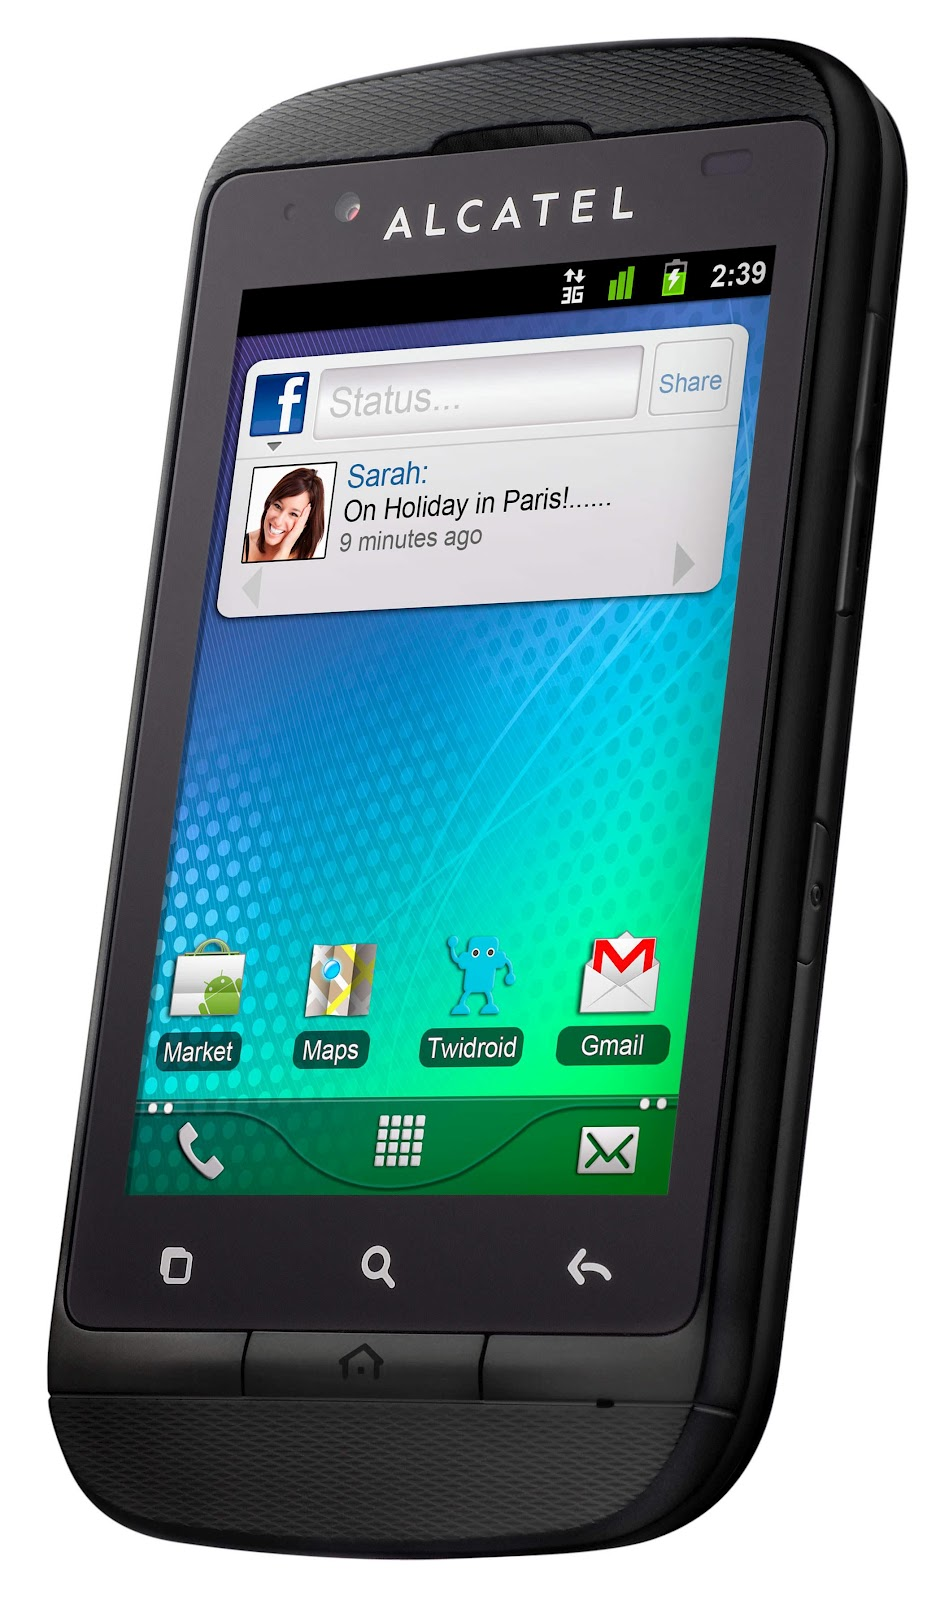 Alcatel one touch pop c9 - c3728